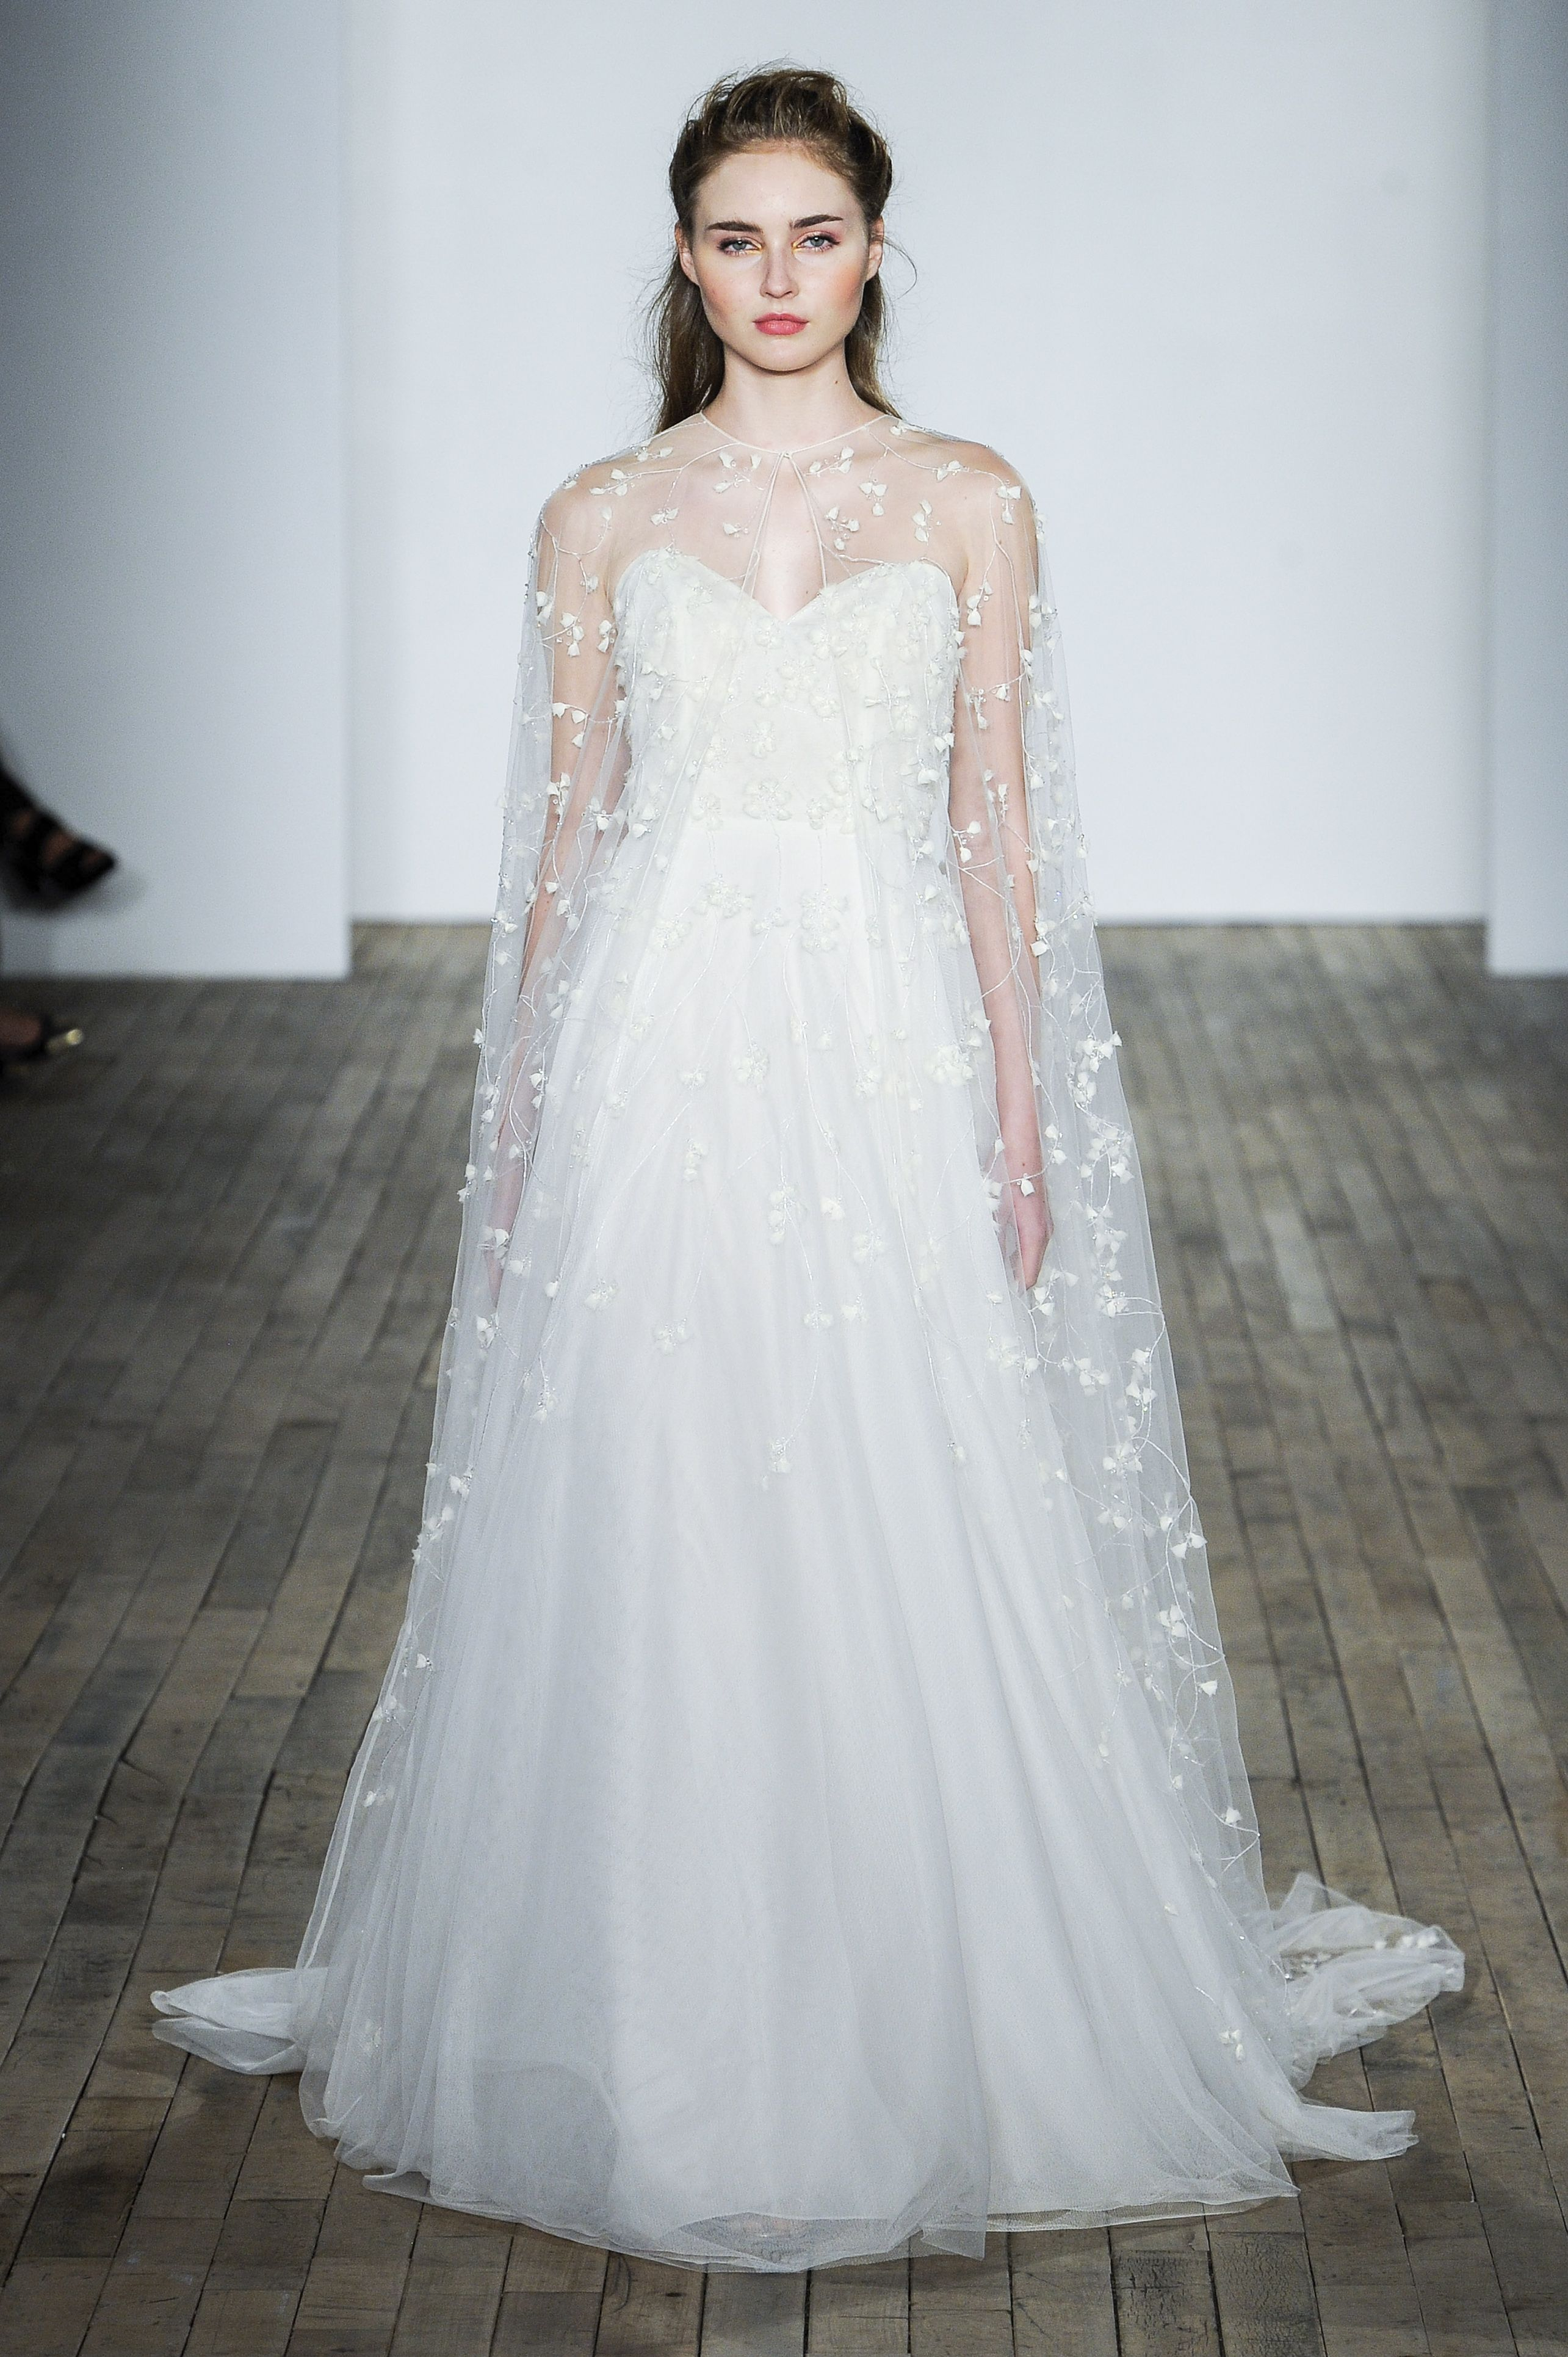 19 Dreamy Haute Couture Wedding Dresses Meghan Markle Could Wear On ...